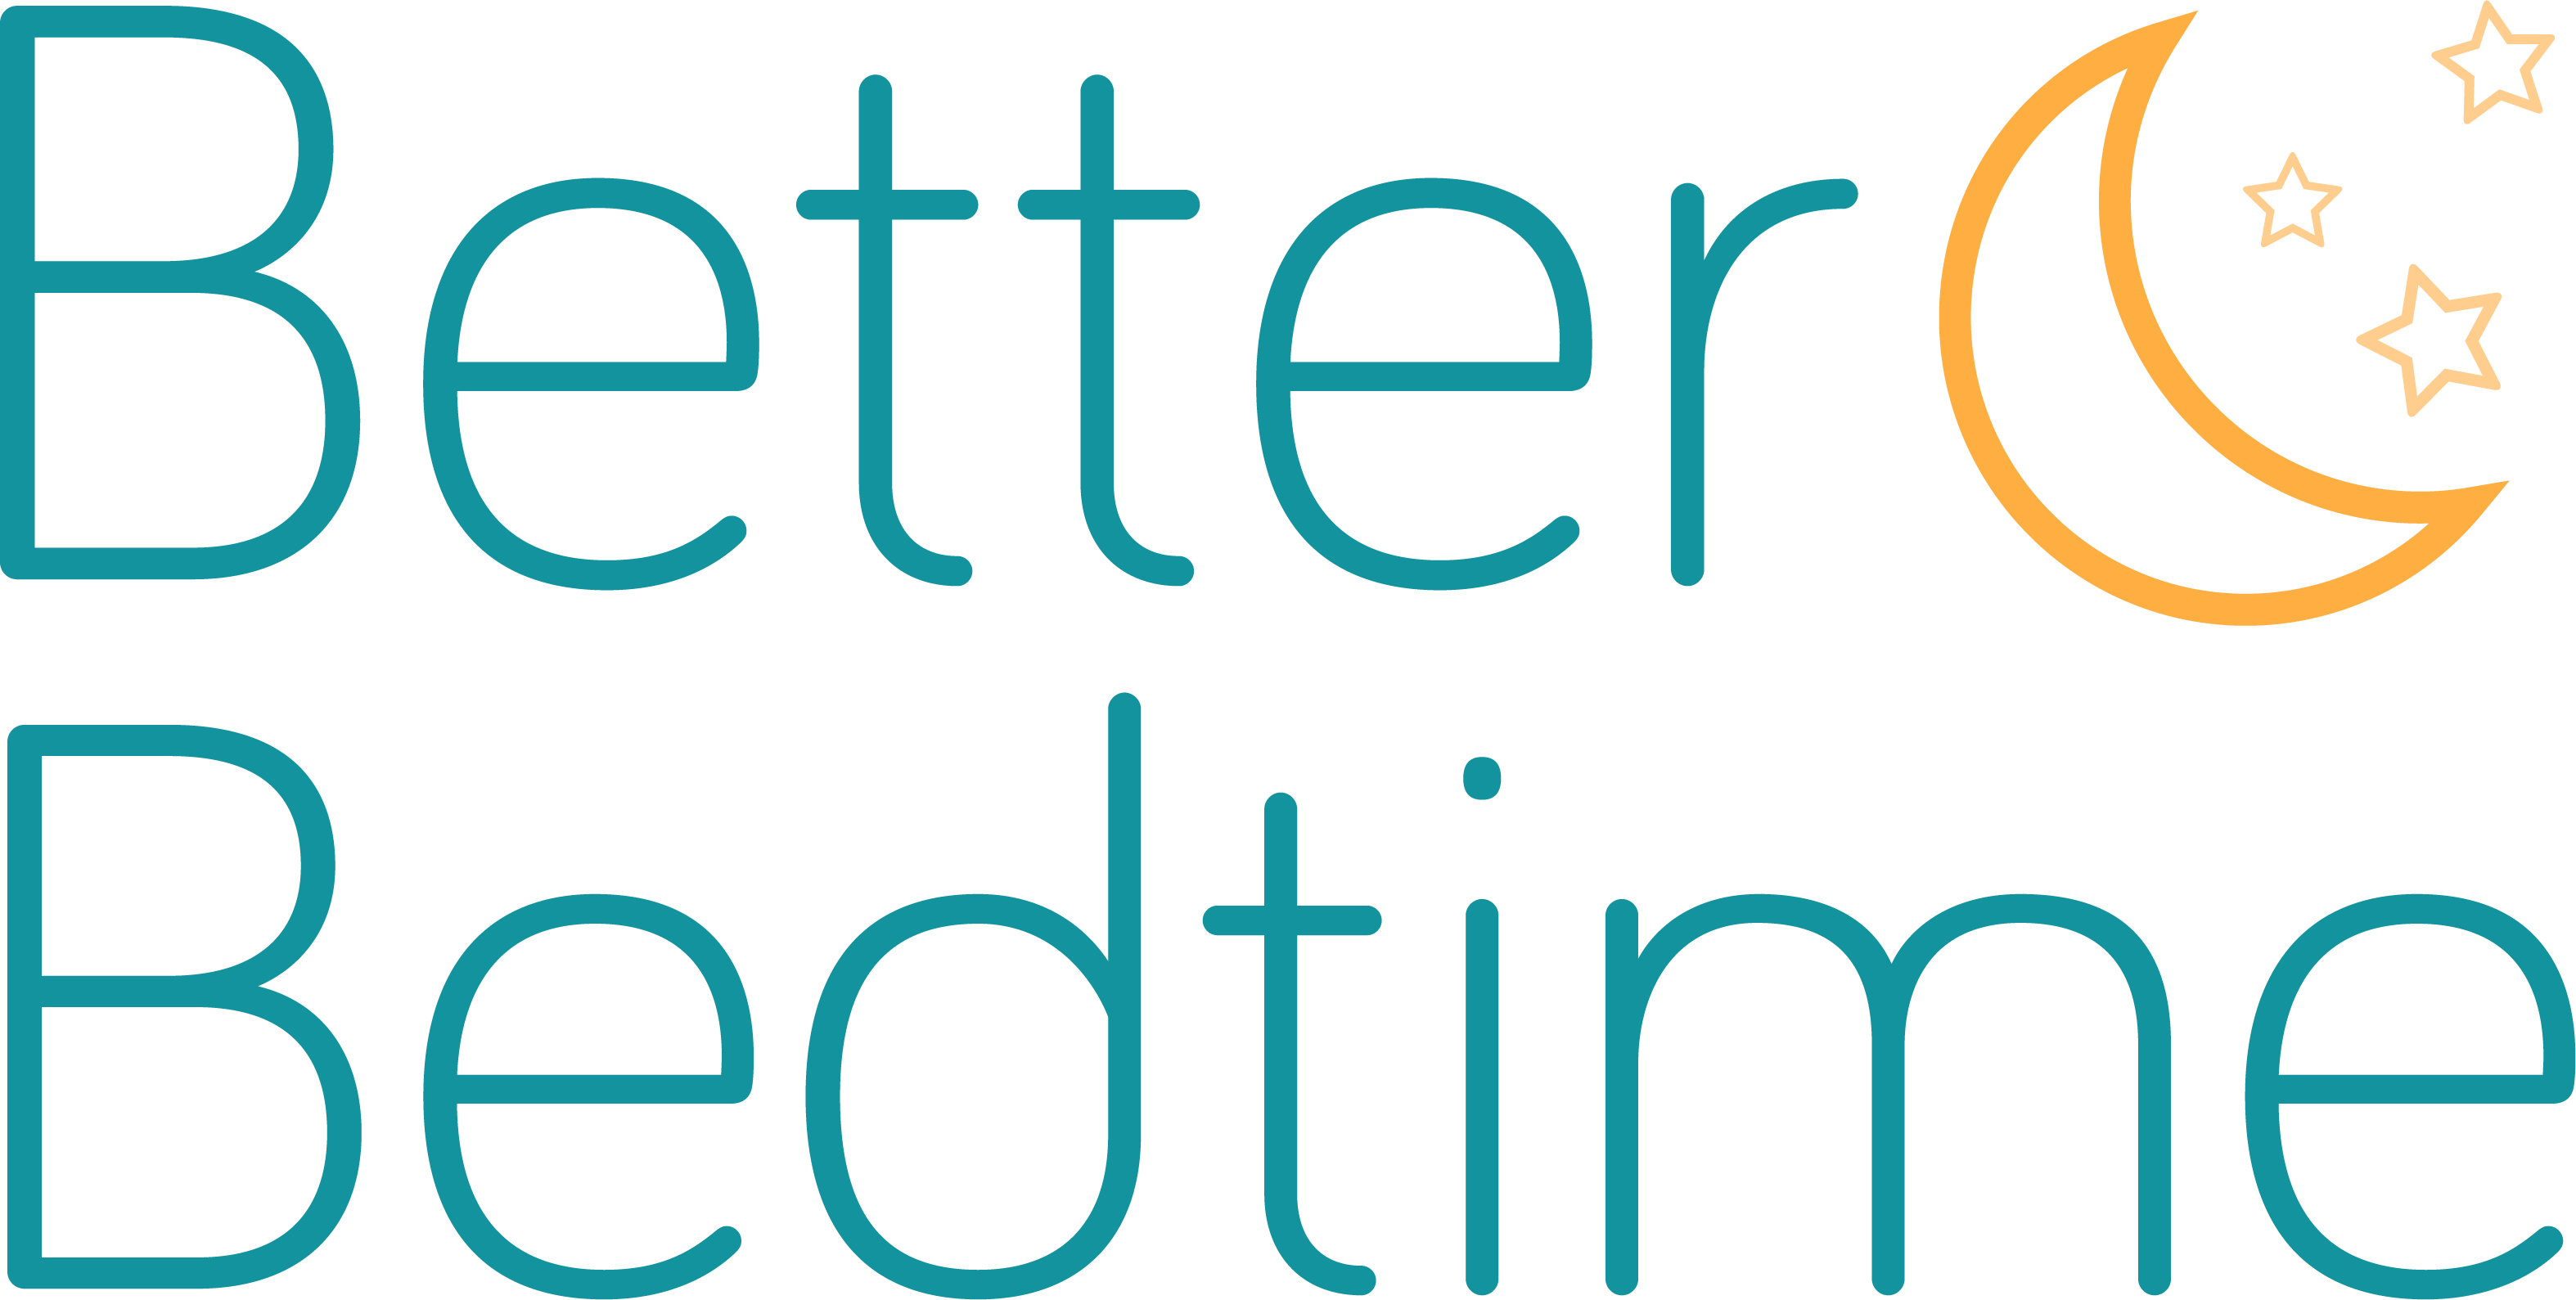 Better Bedtime Sleep Consulting - Booth #3